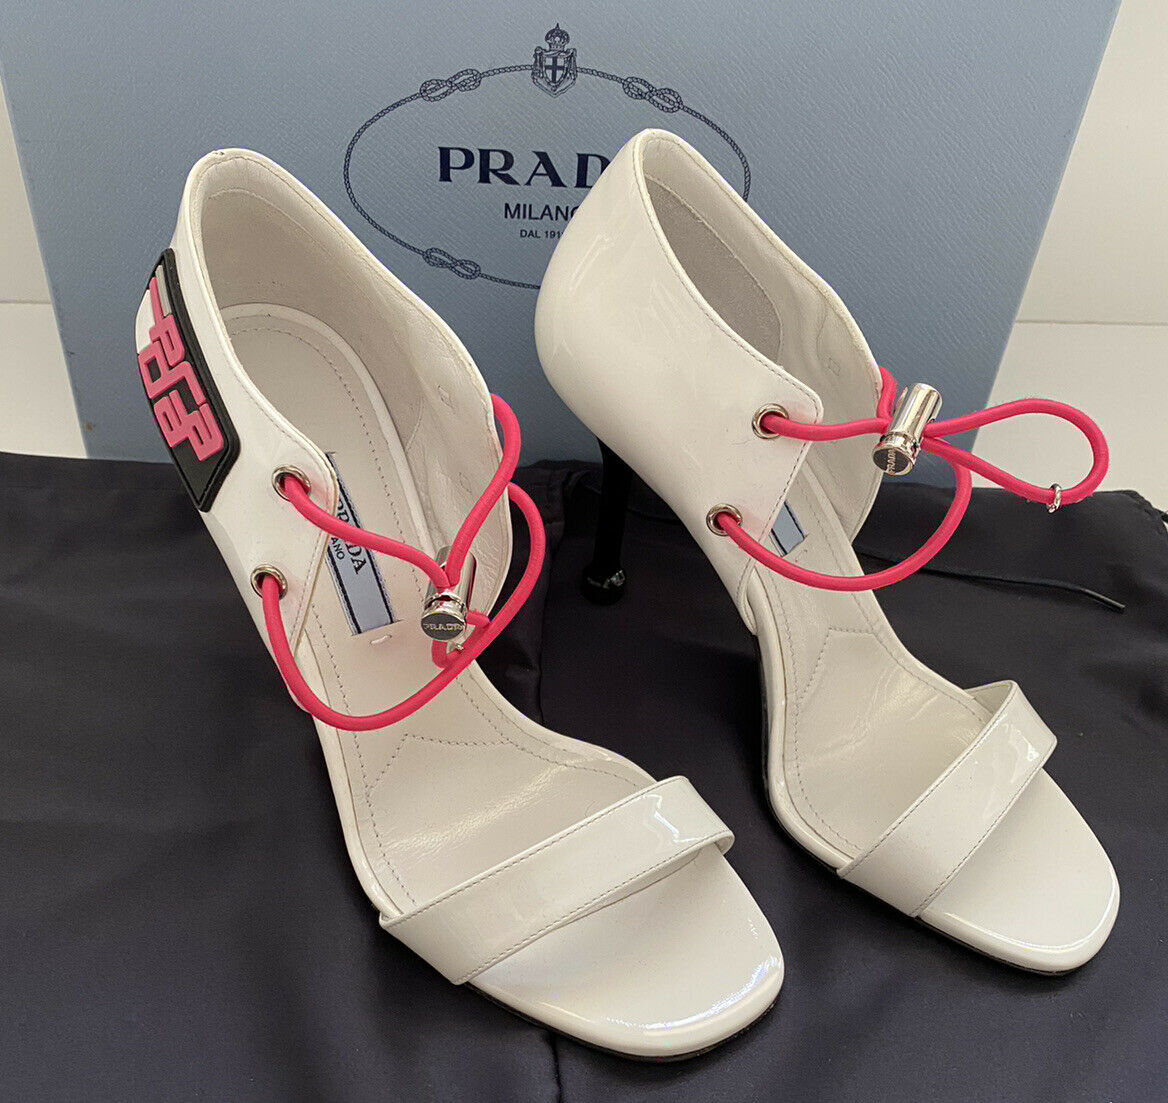 NIB $950 Prada MILANO Women's High Heel Leather White Shoes 6 US 1X130L Italy